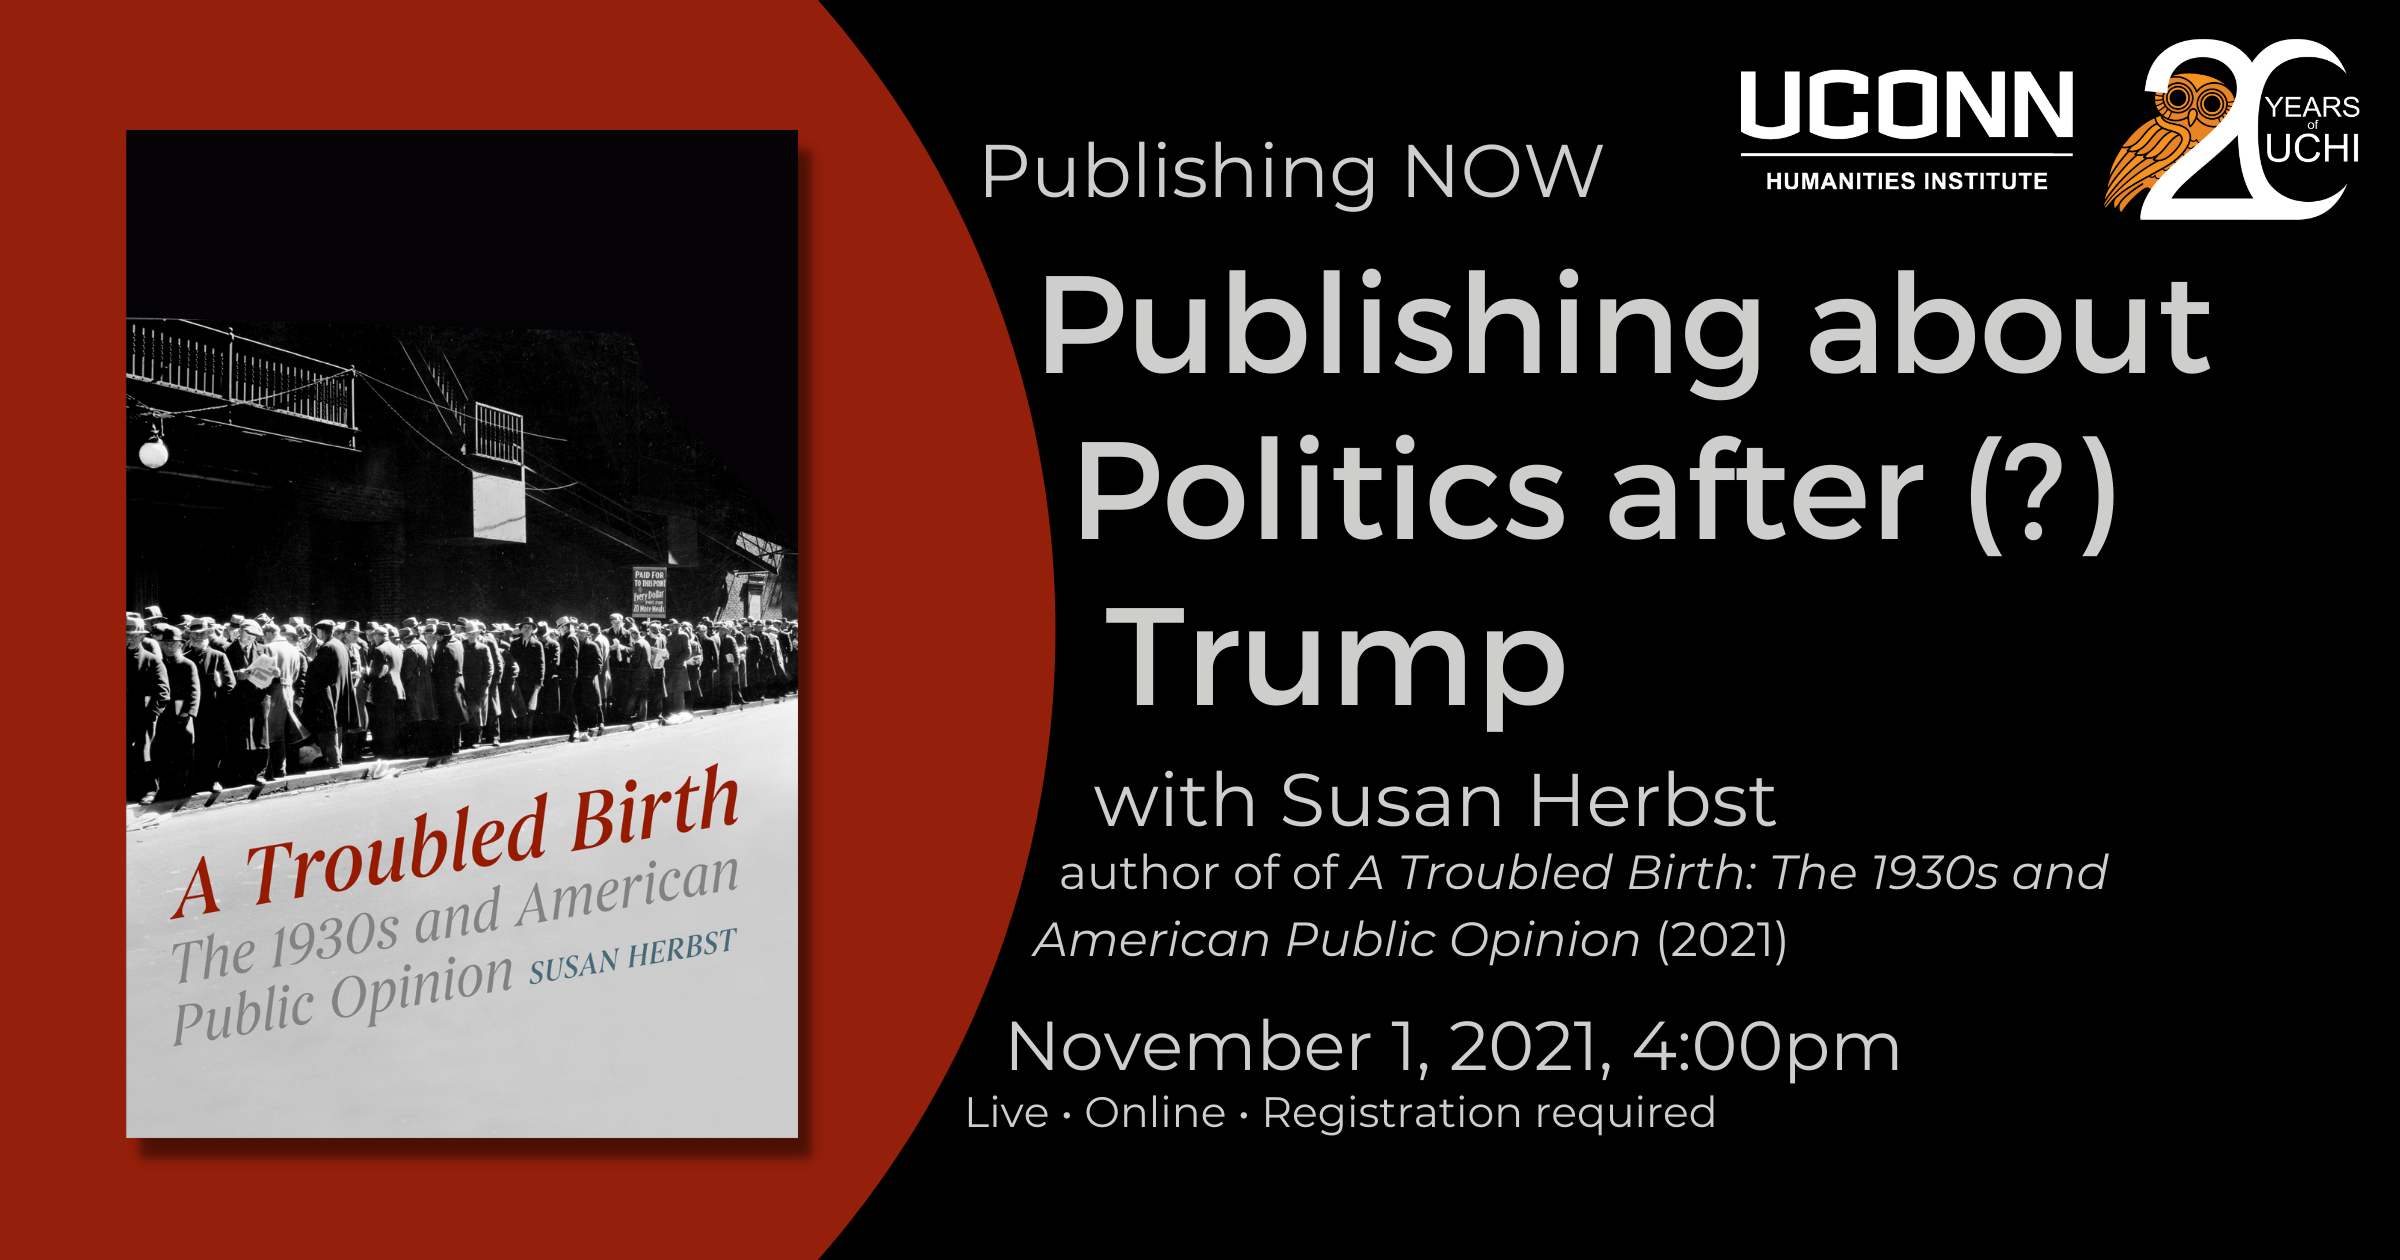 Publishing NOW: Publishing about politics after (?) Trump. Susan Herbst, author of A Troubled Birth: The 1930s and American Public Opinion. November 1, 2021, 4:00pm. Live Online. Registration required.